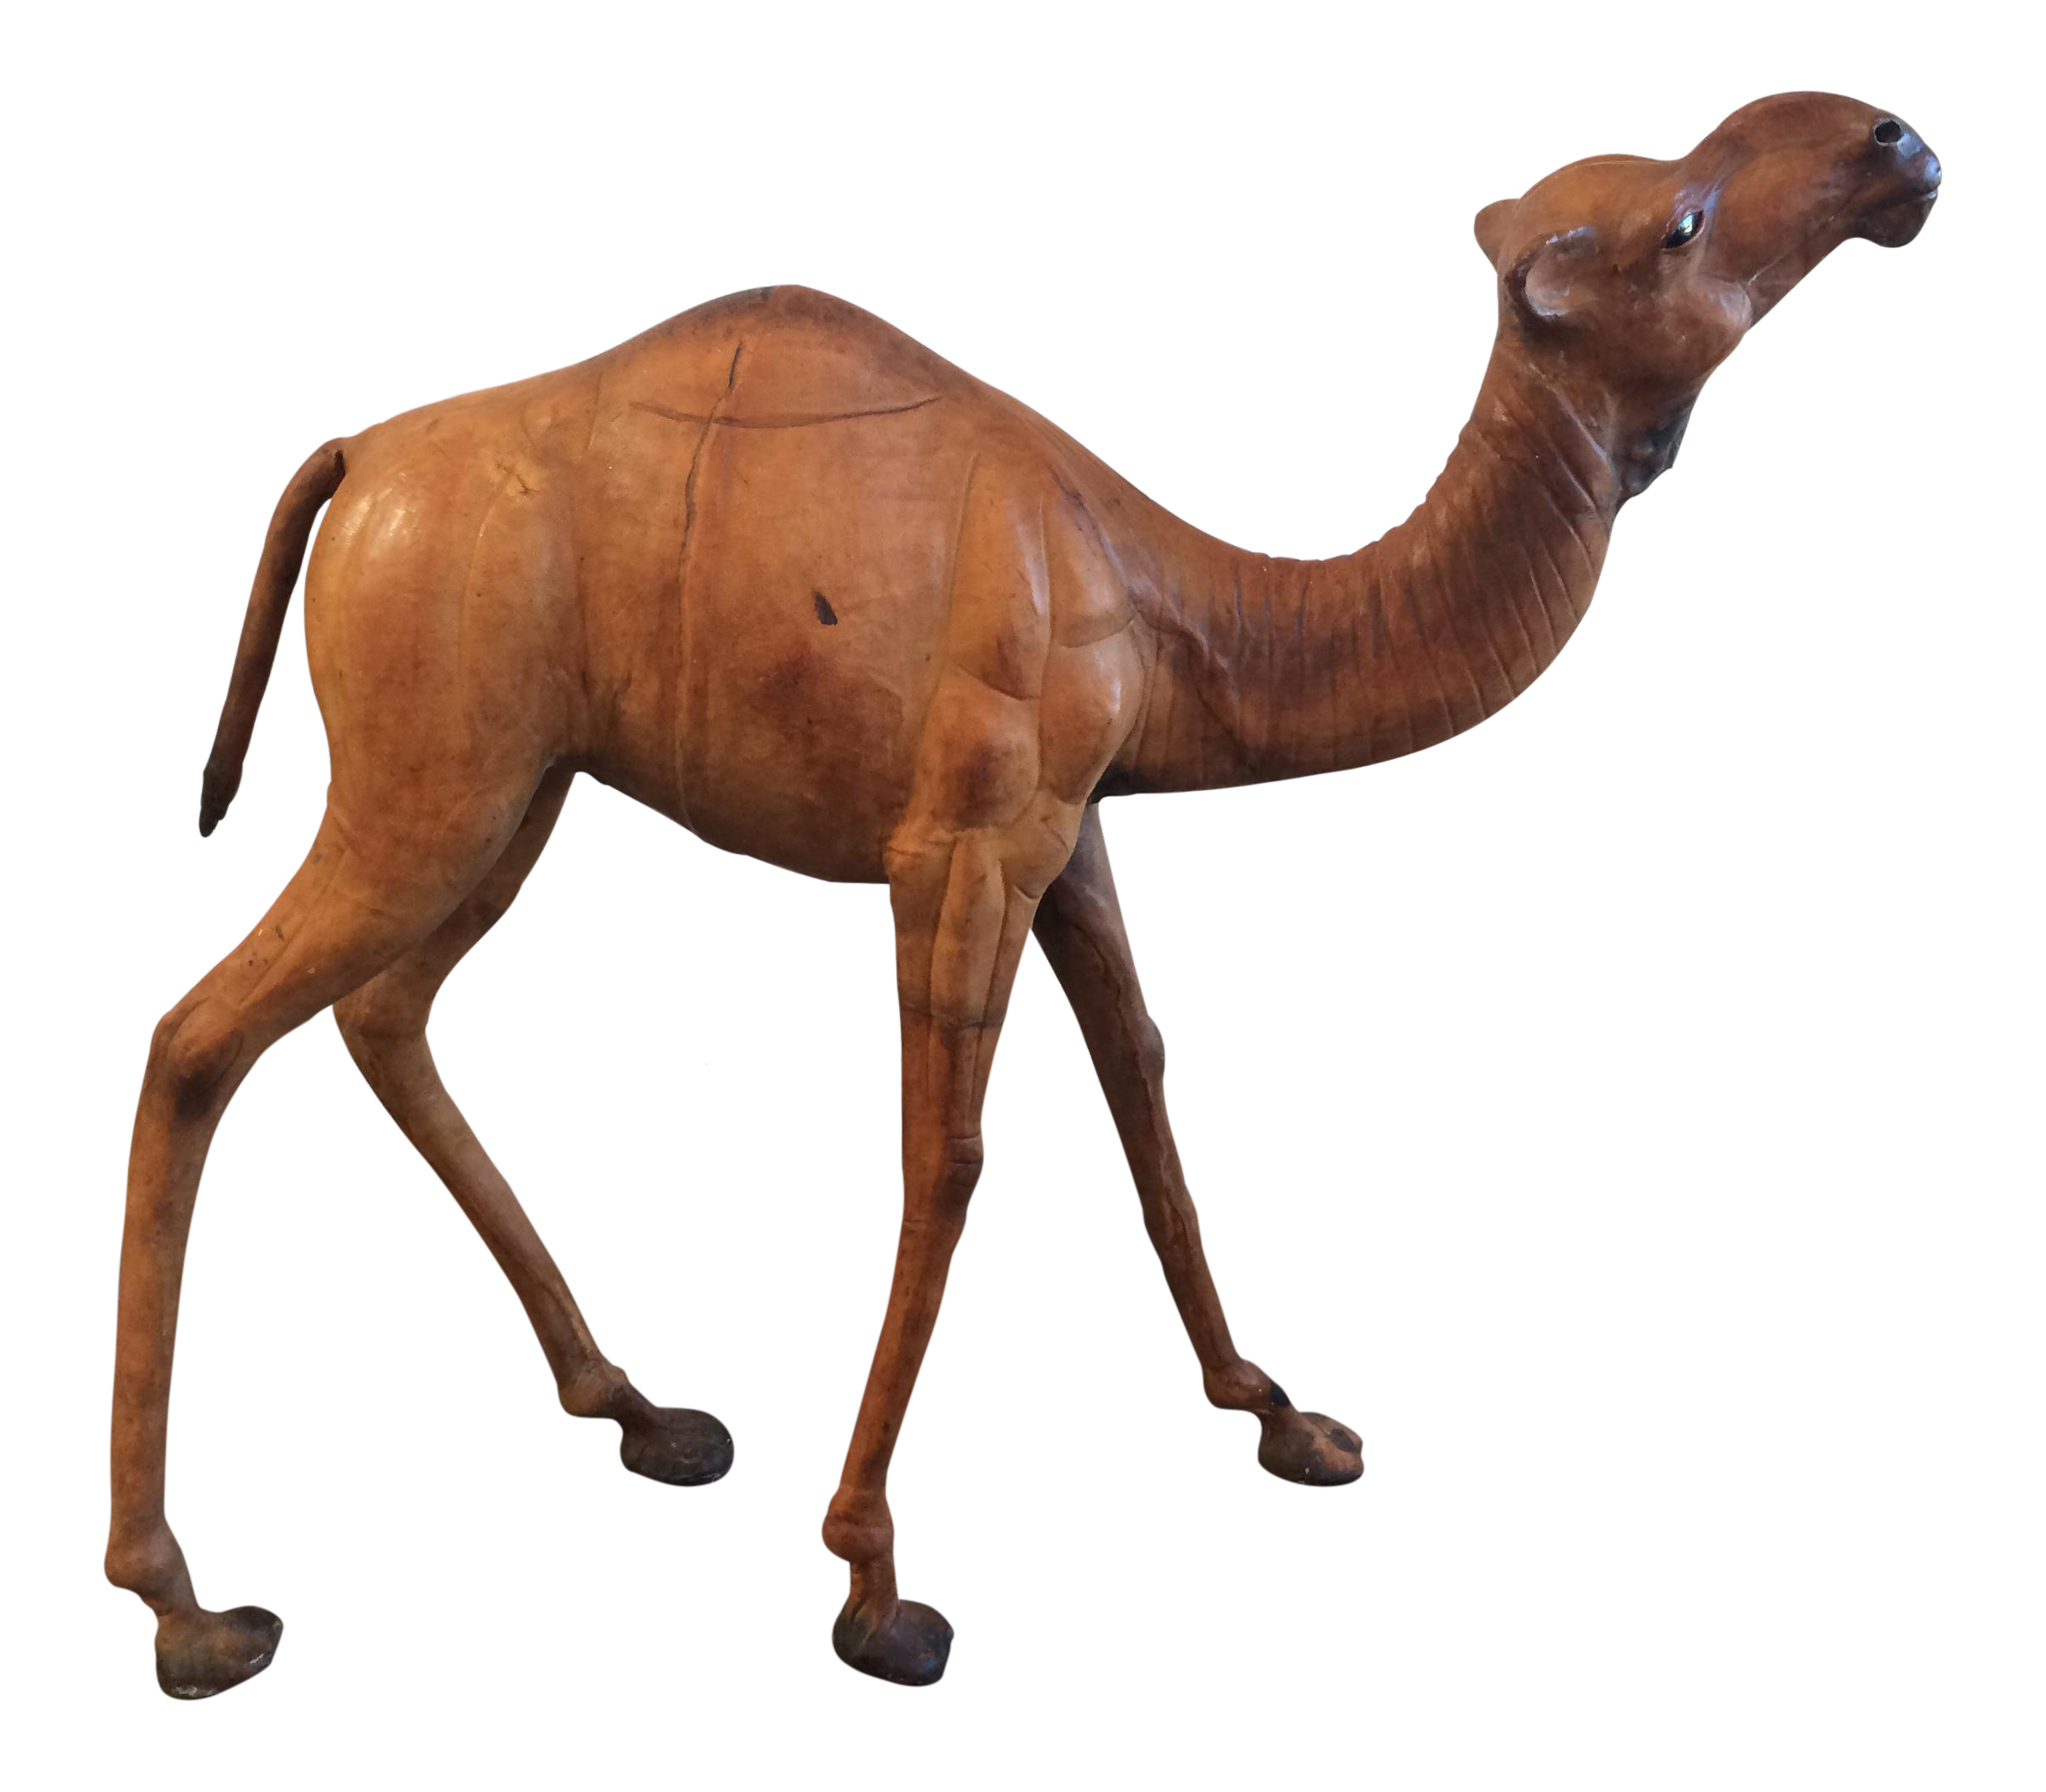 Drawing camels decorative. Vintage leather camel statue